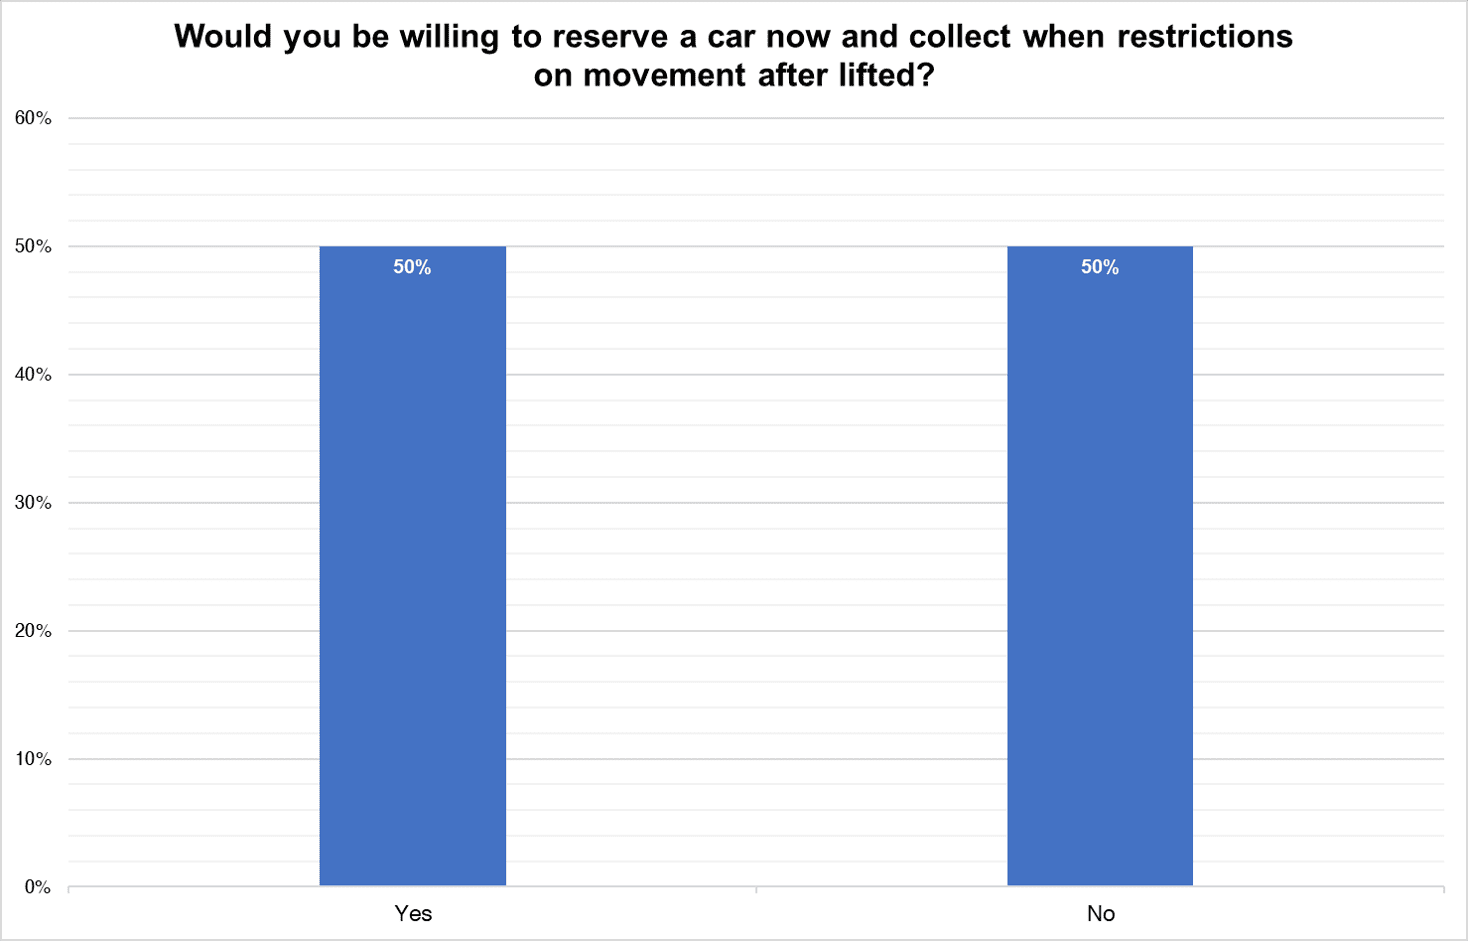 Survey question: Would you be willing to reserve car now and collect when restrictions on movement after lifted